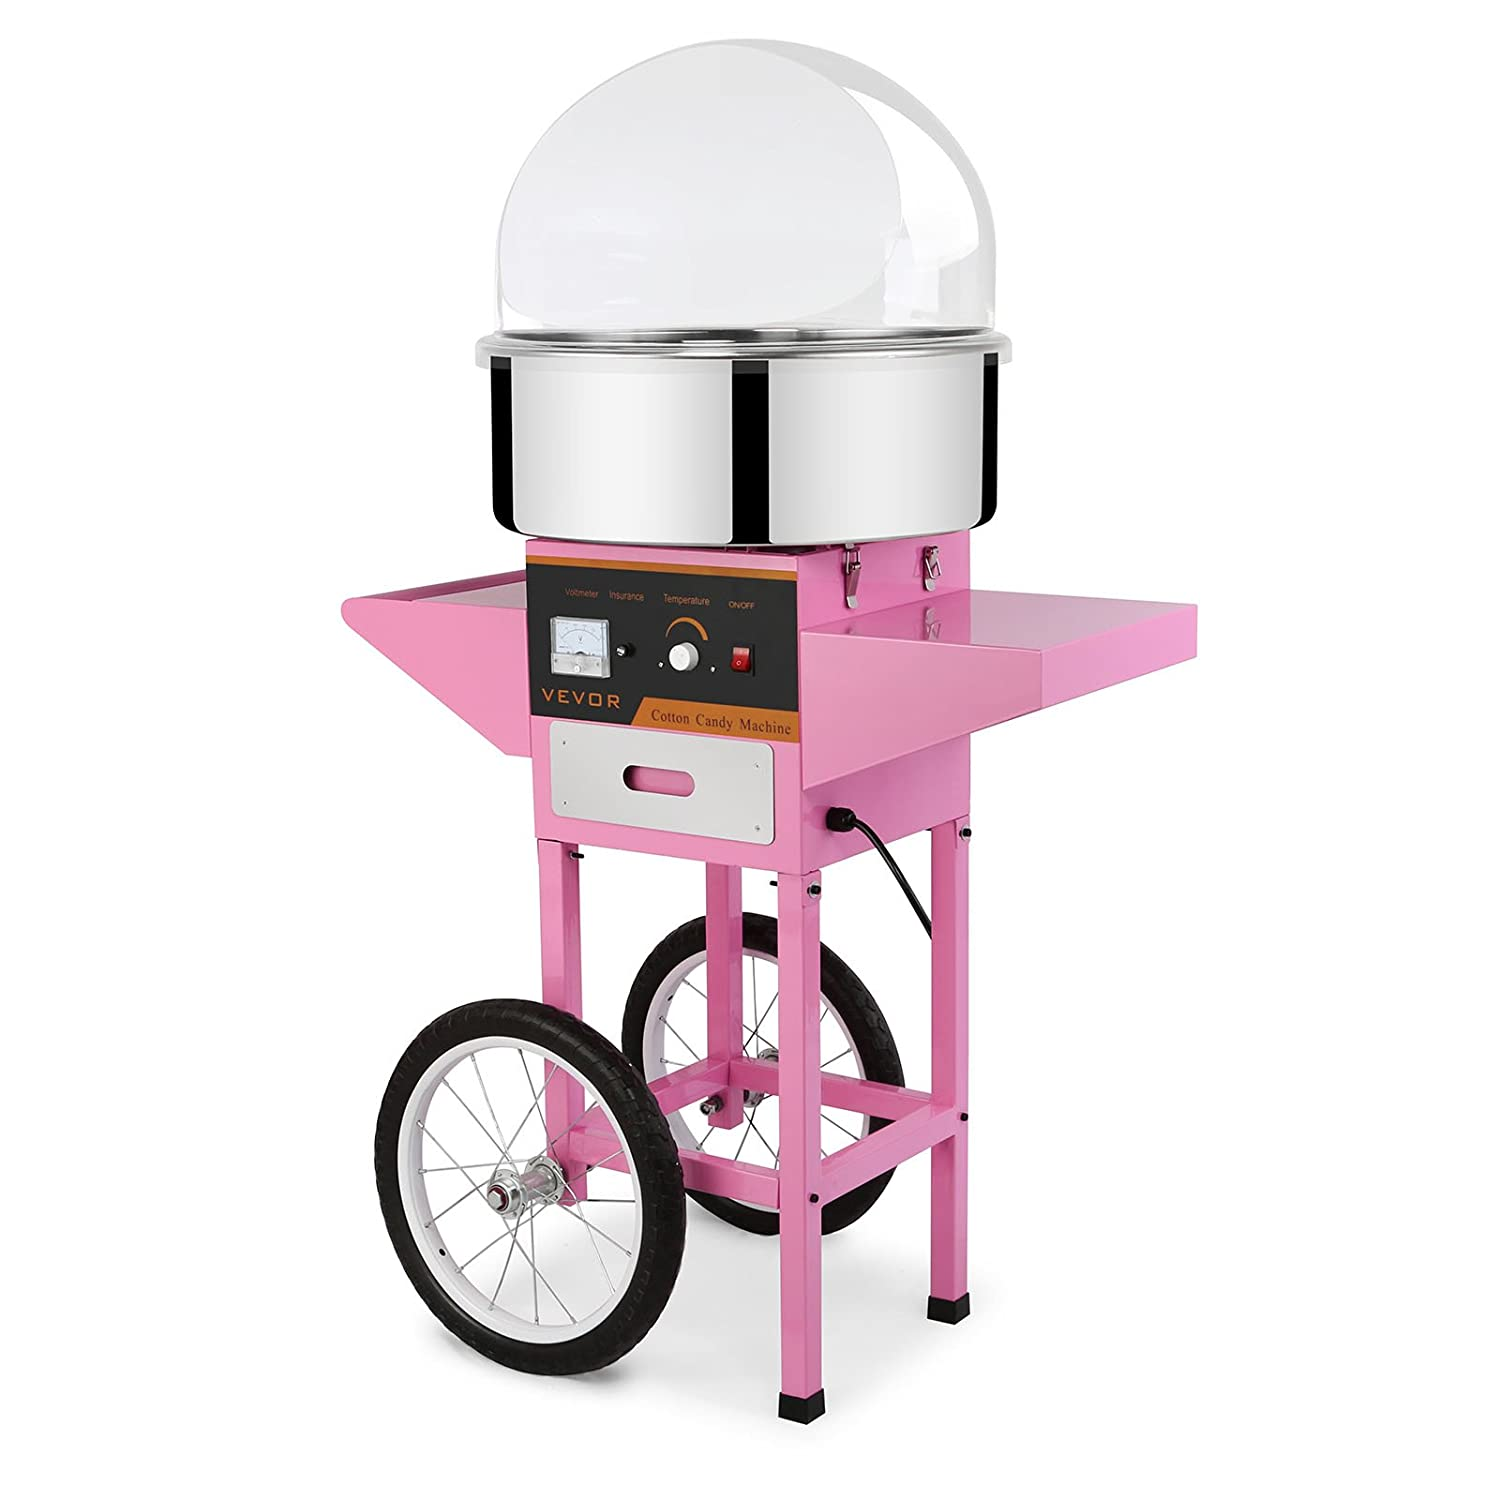 Cotton Candy Machine with Bubble Shield and Cart